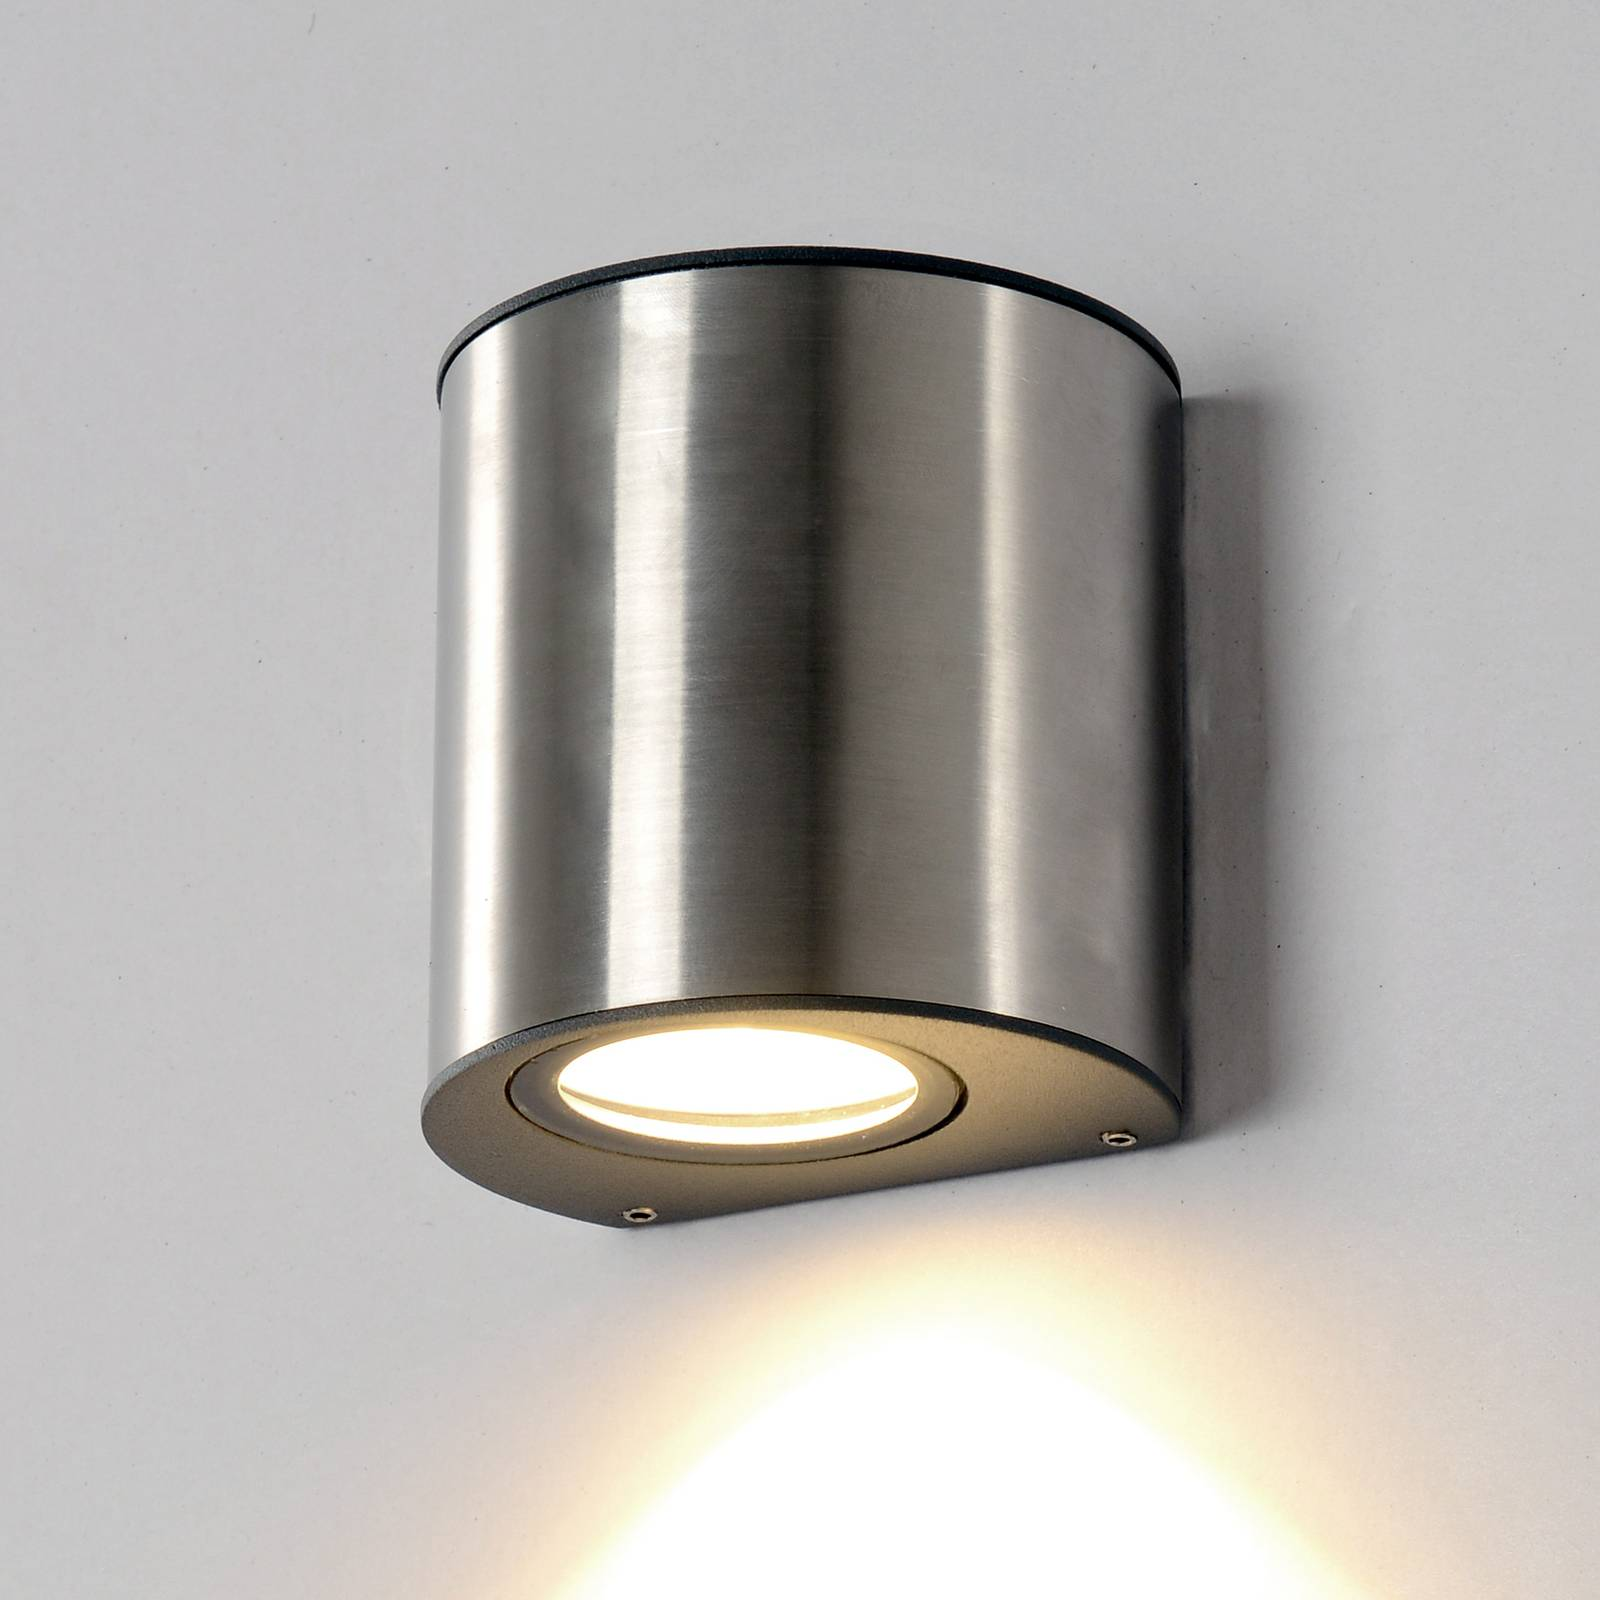 Small LED wall lamp Ilumi for outdoor areas from Eco-Light